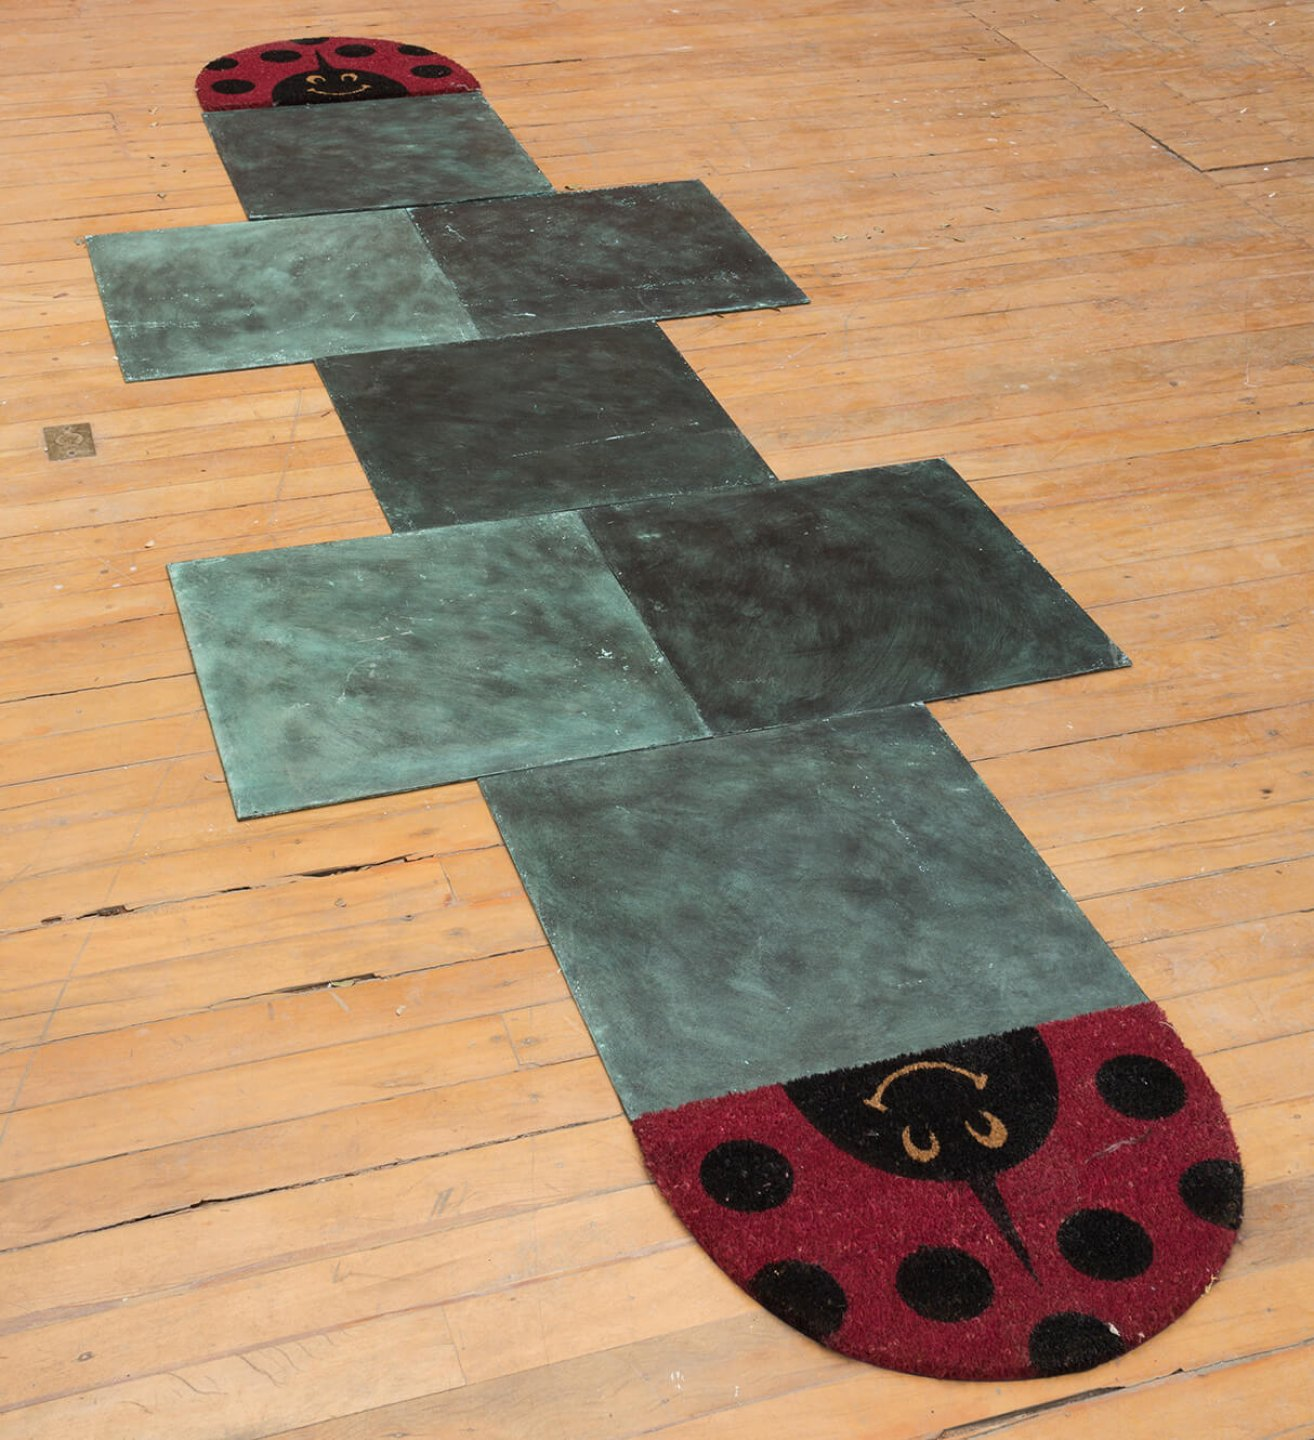 Adriano Costa, <em>To hell and heaven is missing 3</em>, 2014, 7 bronze plaques and carpets, 380 × 120 cm - Mendes Wood DM